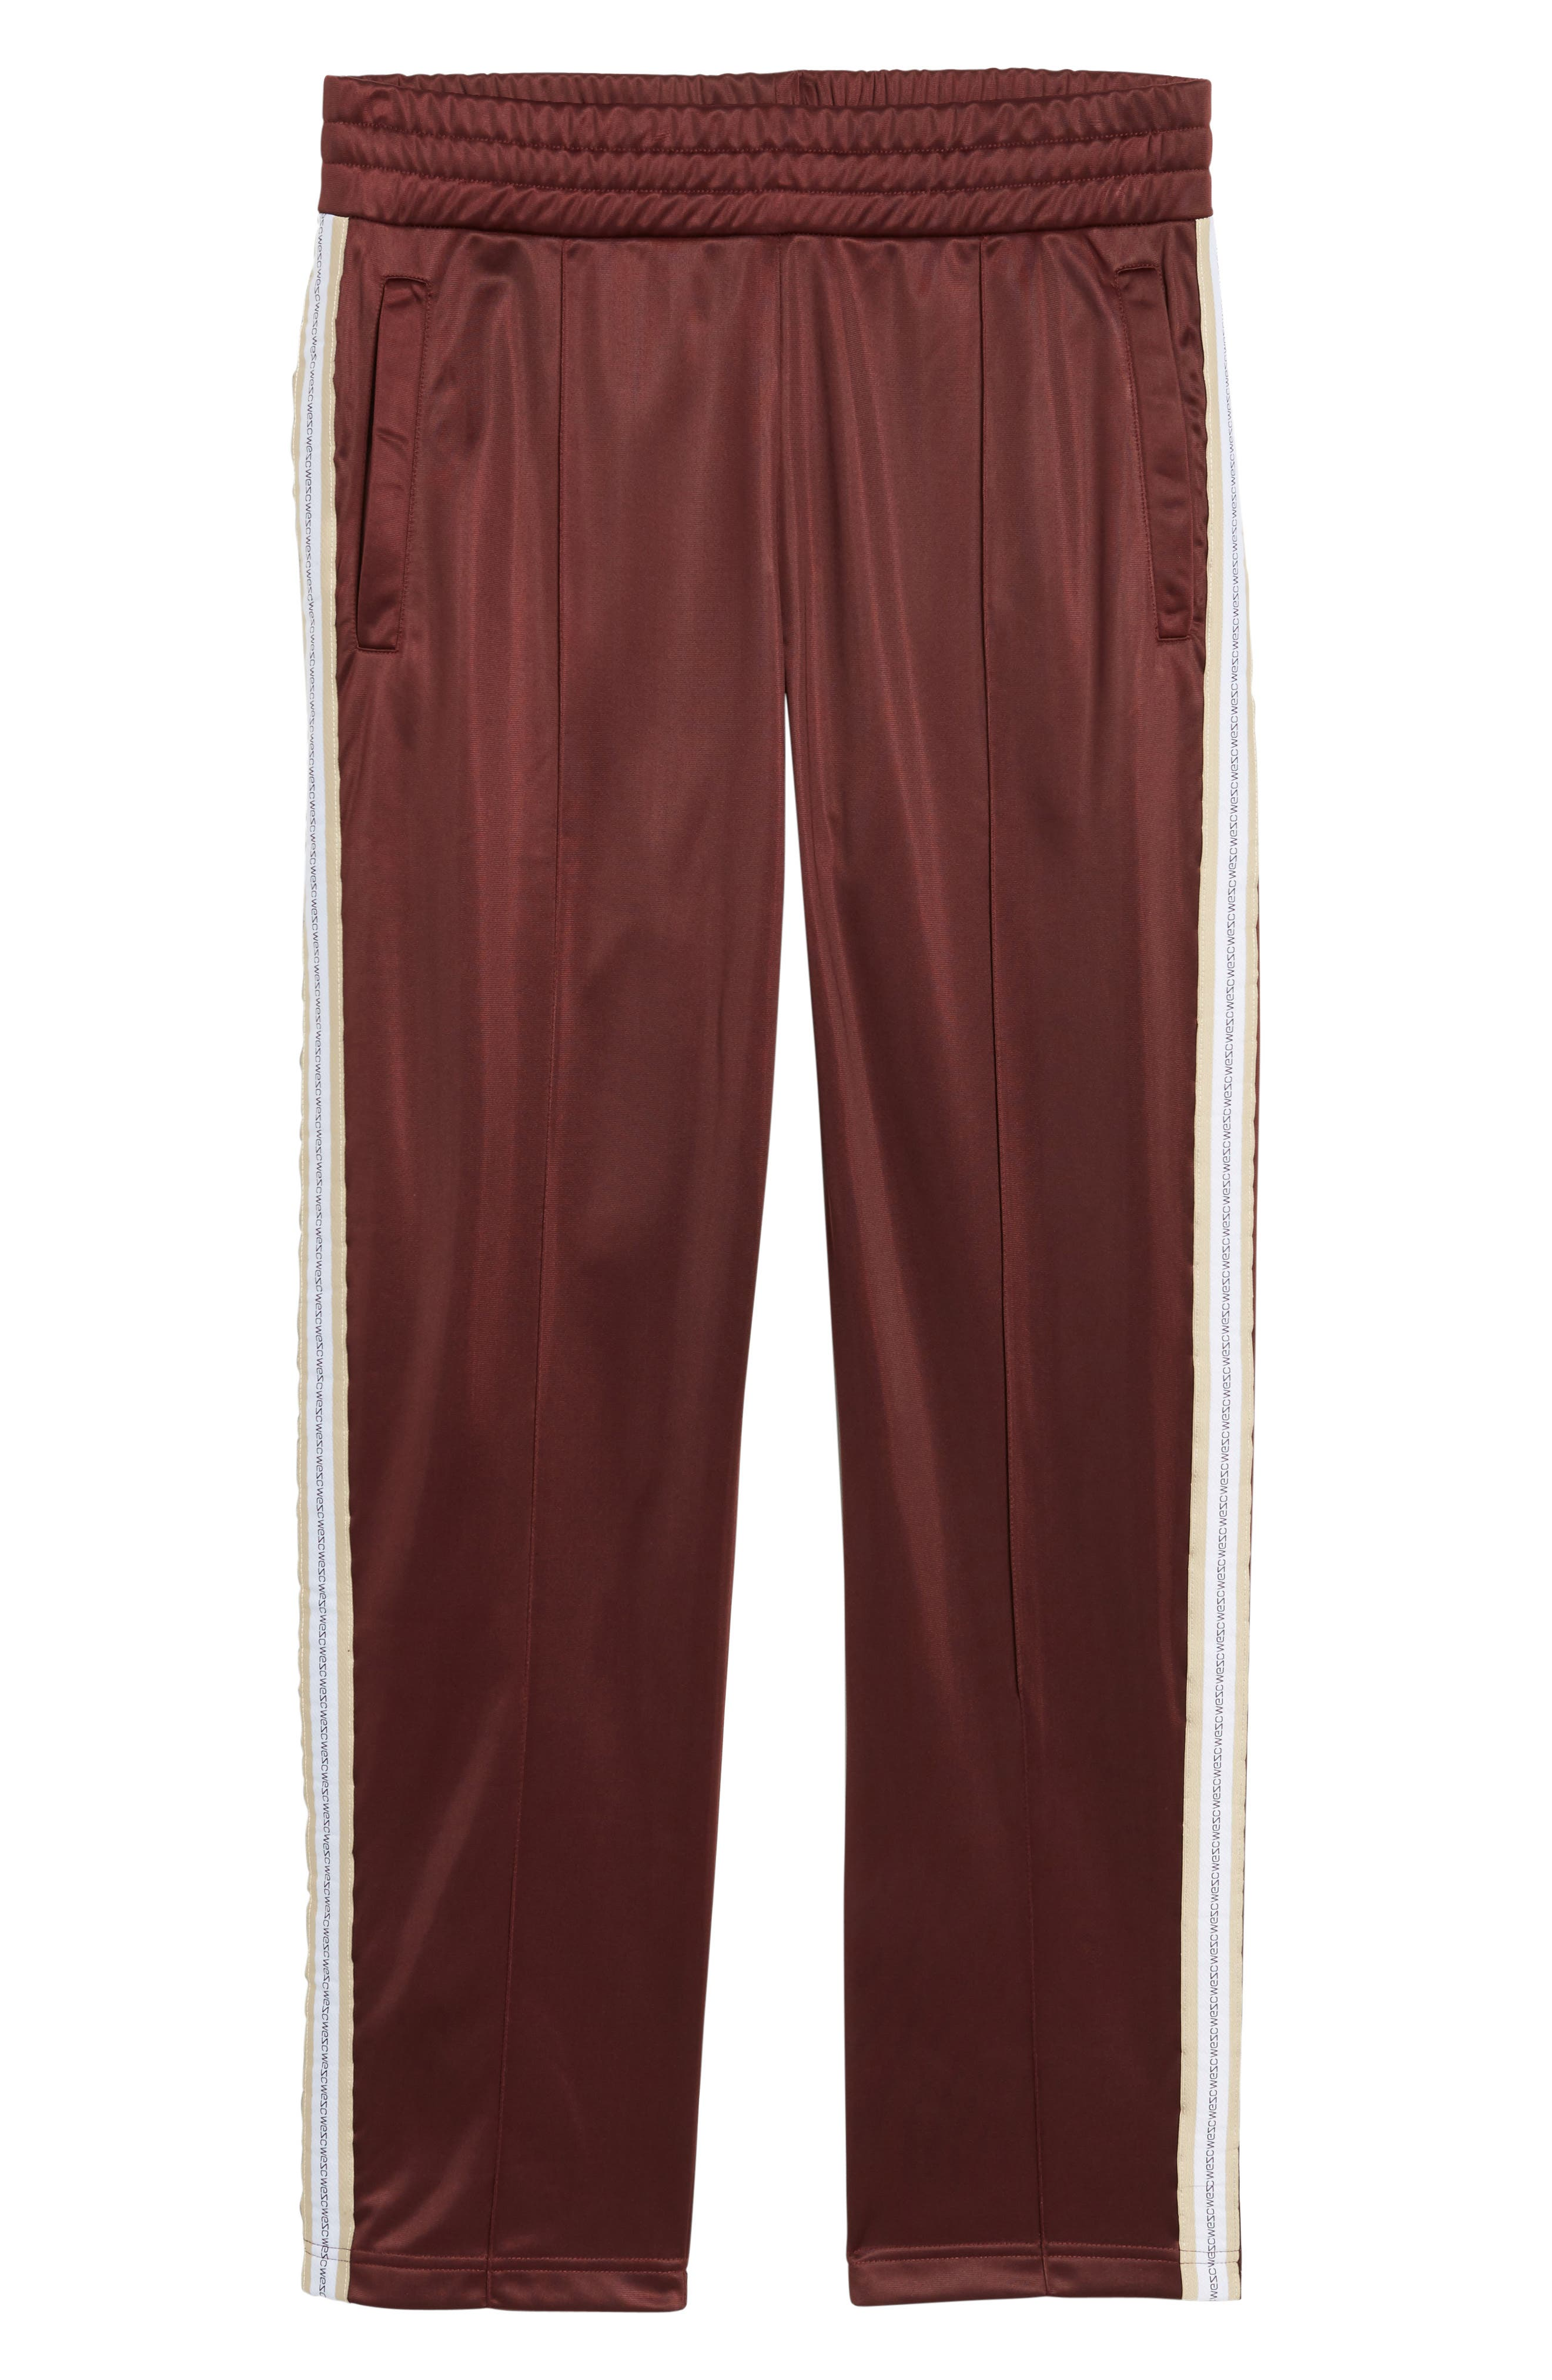 Marcel Track Pants,                             Alternate thumbnail 6, color,                             605